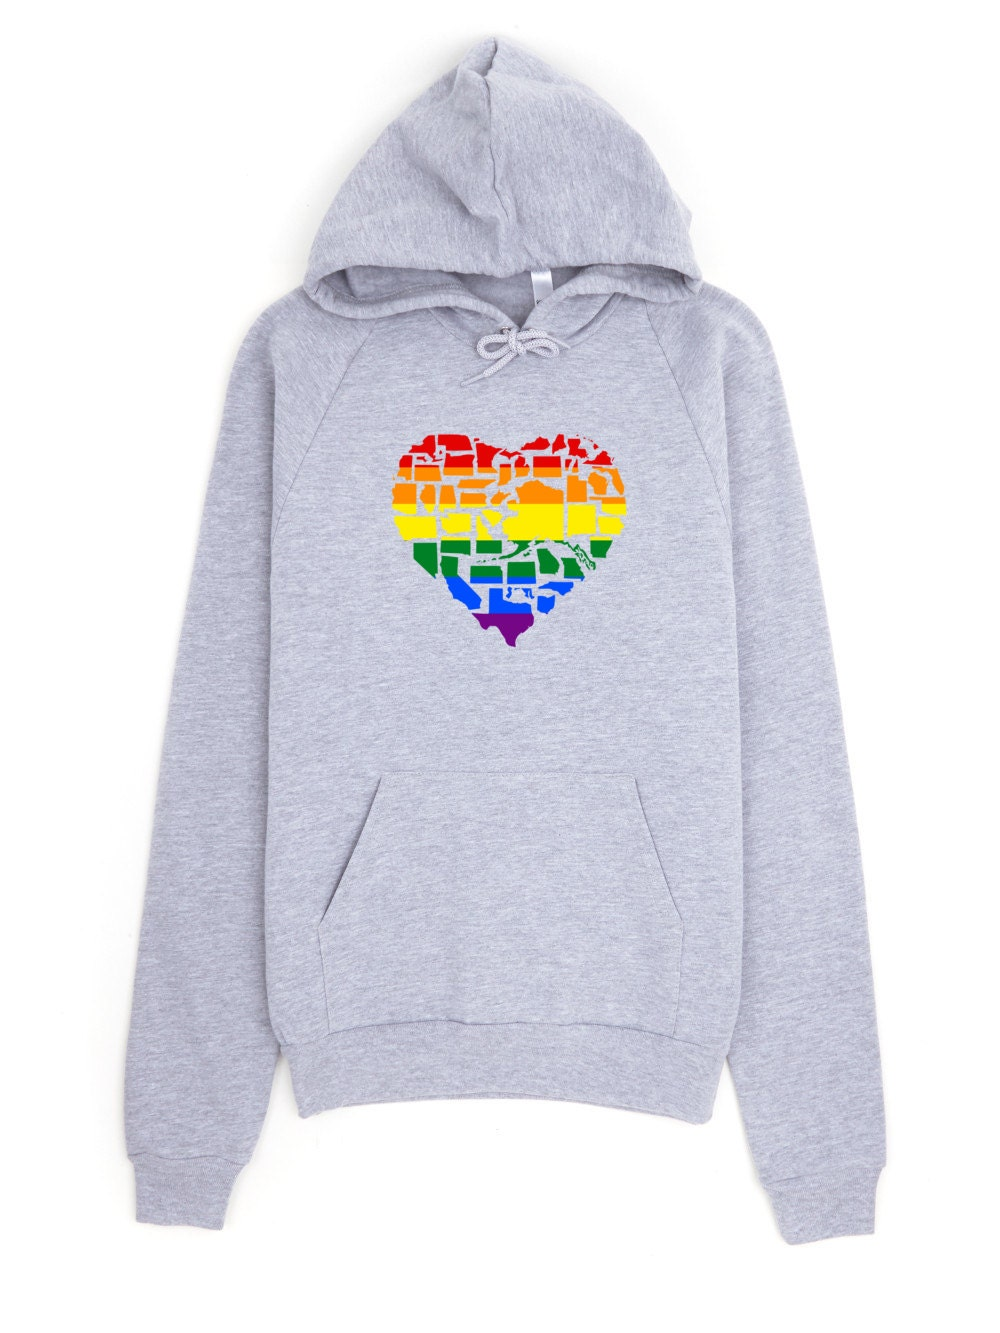 Gay Pride Sweatshirt - Marriage Equality Gay Pride in All 50 States Gay Pride Hoodie